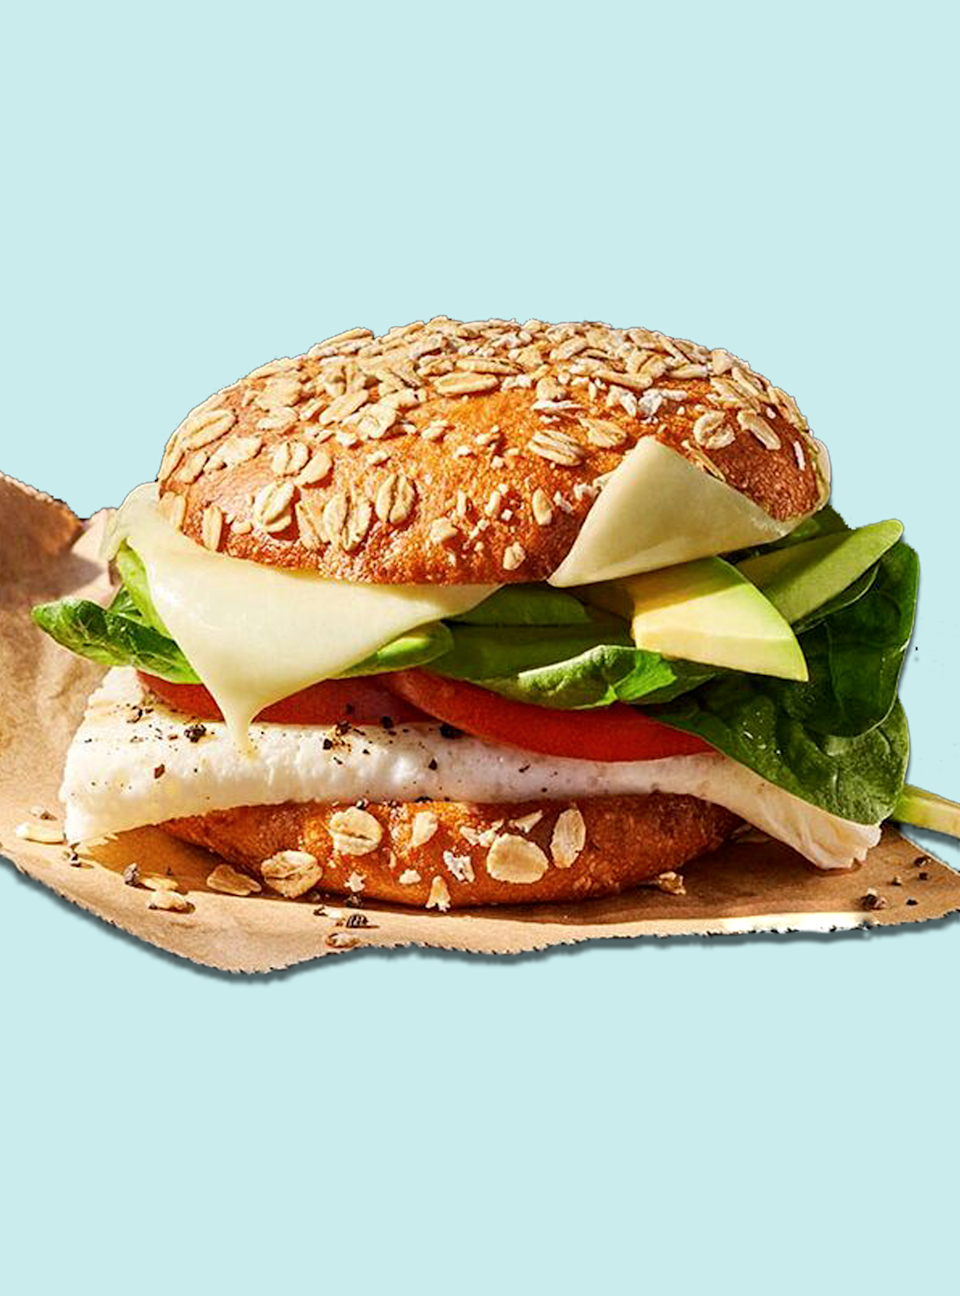 "<p><strong>Calories</strong>: 350</p><p><strong>Total Carbohydrates</strong>: 40g</p><p><strong>Saturated Fat</strong>: 6g</p><p><strong>Sodium</strong>: 700mg </p><p>Made with fresh eggs, Panera's lean take on a breakfast sandwich is packed with both protein and fiber. The sprouted grain bagel rounds out the 5g of fiber, and egg whites are the base of 19g of protein. Creamy avocado is an added bonus. If you order this sandwich on the regular, try swapping scrambled eggs in for egg whites every once in a while.</p><p><a class=""link rapid-noclick-resp"" href=""https://www.panerabread.com/en-us/menu/products/avocado--egg-white---spinach.html"" rel=""nofollow noopener"" target=""_blank"" data-ylk=""slk:Order Now"">Order Now</a></p><p><strong>Nutrition Lab Pro Tip:</strong> Sassos is a fan of <a href=""https://www.panerabread.com/en-us/articles/climate-friendly-meals.html"" rel=""nofollow noopener"" target=""_blank"" data-ylk=""slk:Panera's Cool Food Meals Line"" class=""link rapid-noclick-resp"">Panera's Cool Food Meals Line</a>, which features dishes aimed to help fight climate change. These menu items have a smaller carbon footprint than the traditional American Diet and are often nutritious choices, making them good for you and the planet.</p>"